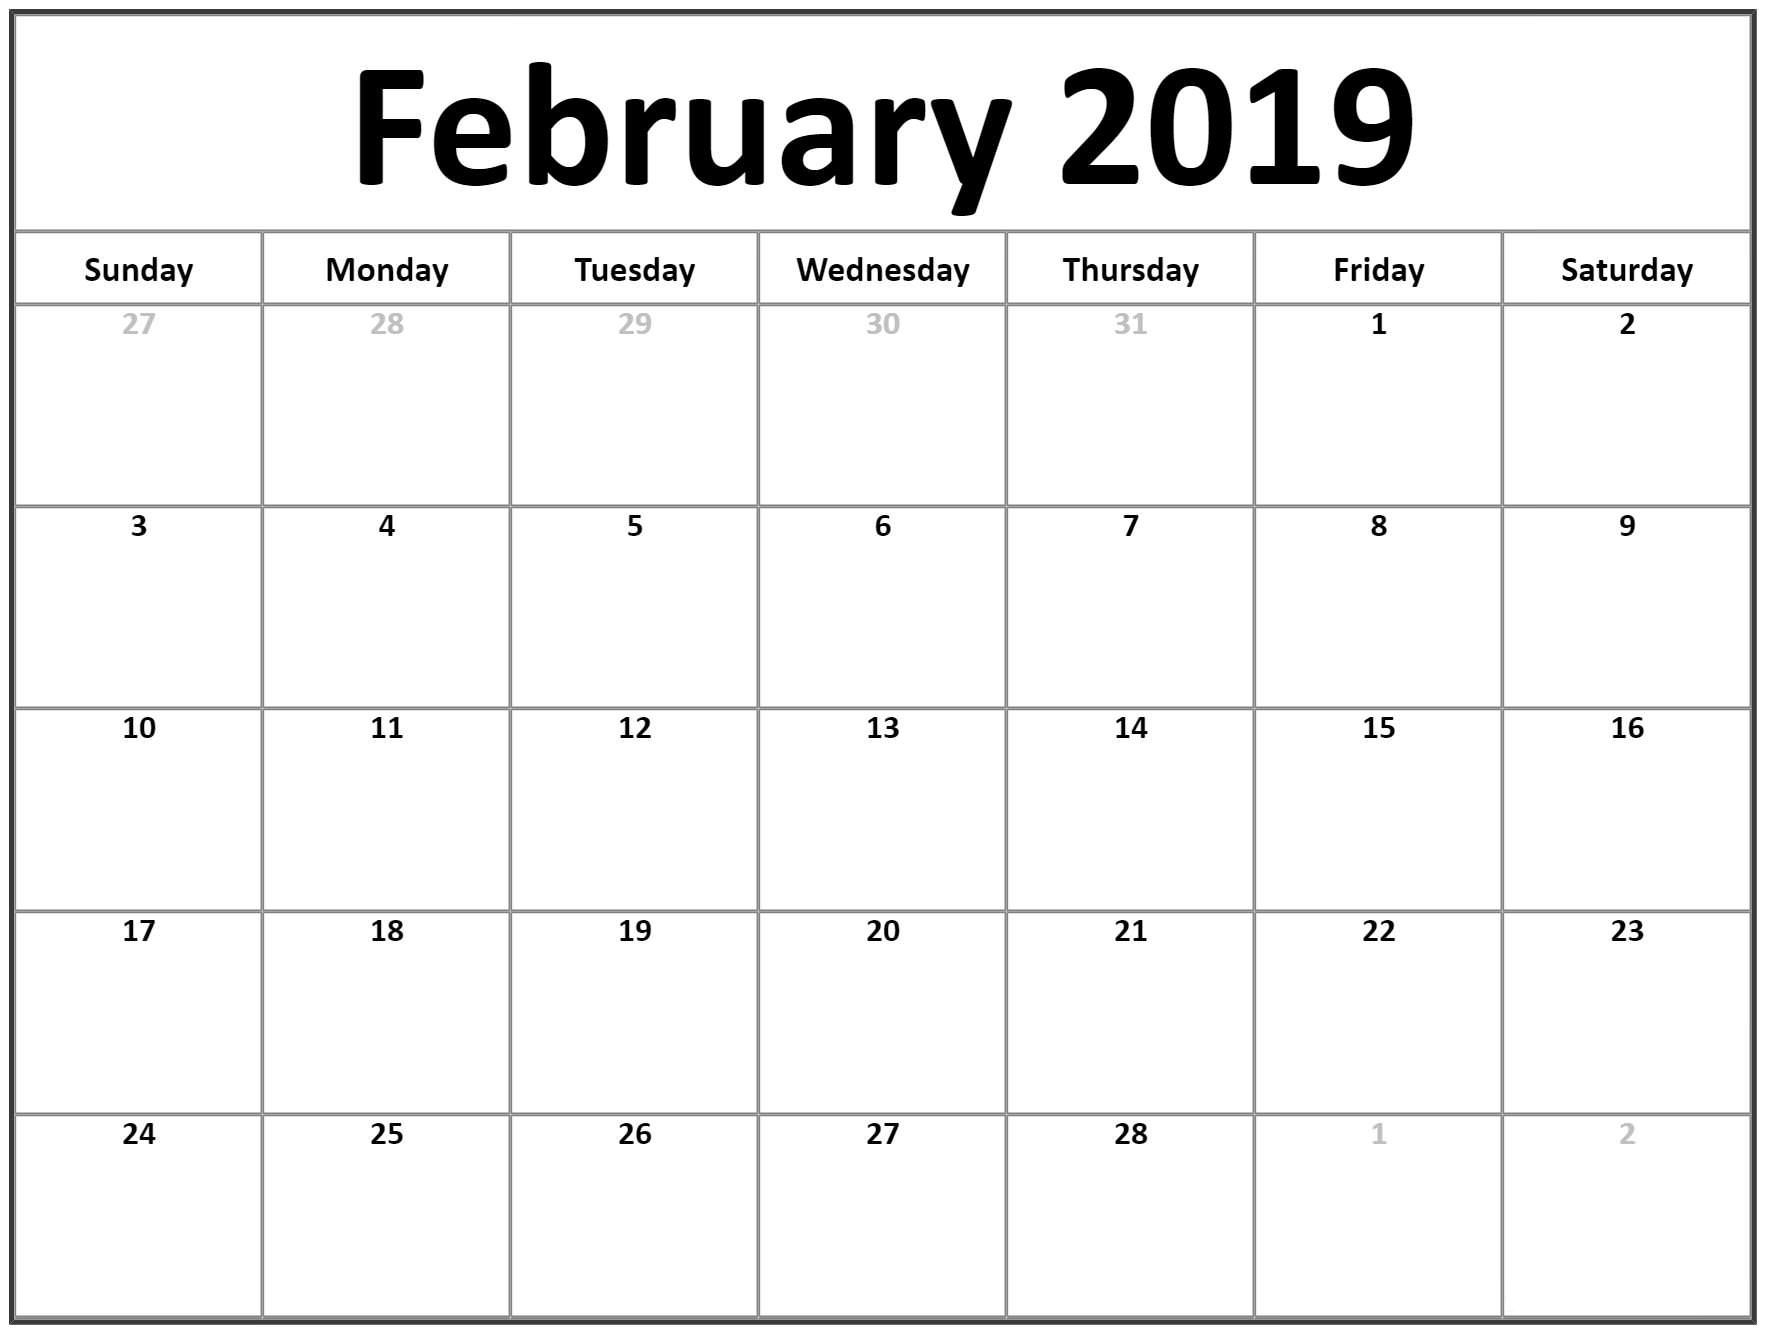 February Calendar 2019 For Office | February Calendar 2019